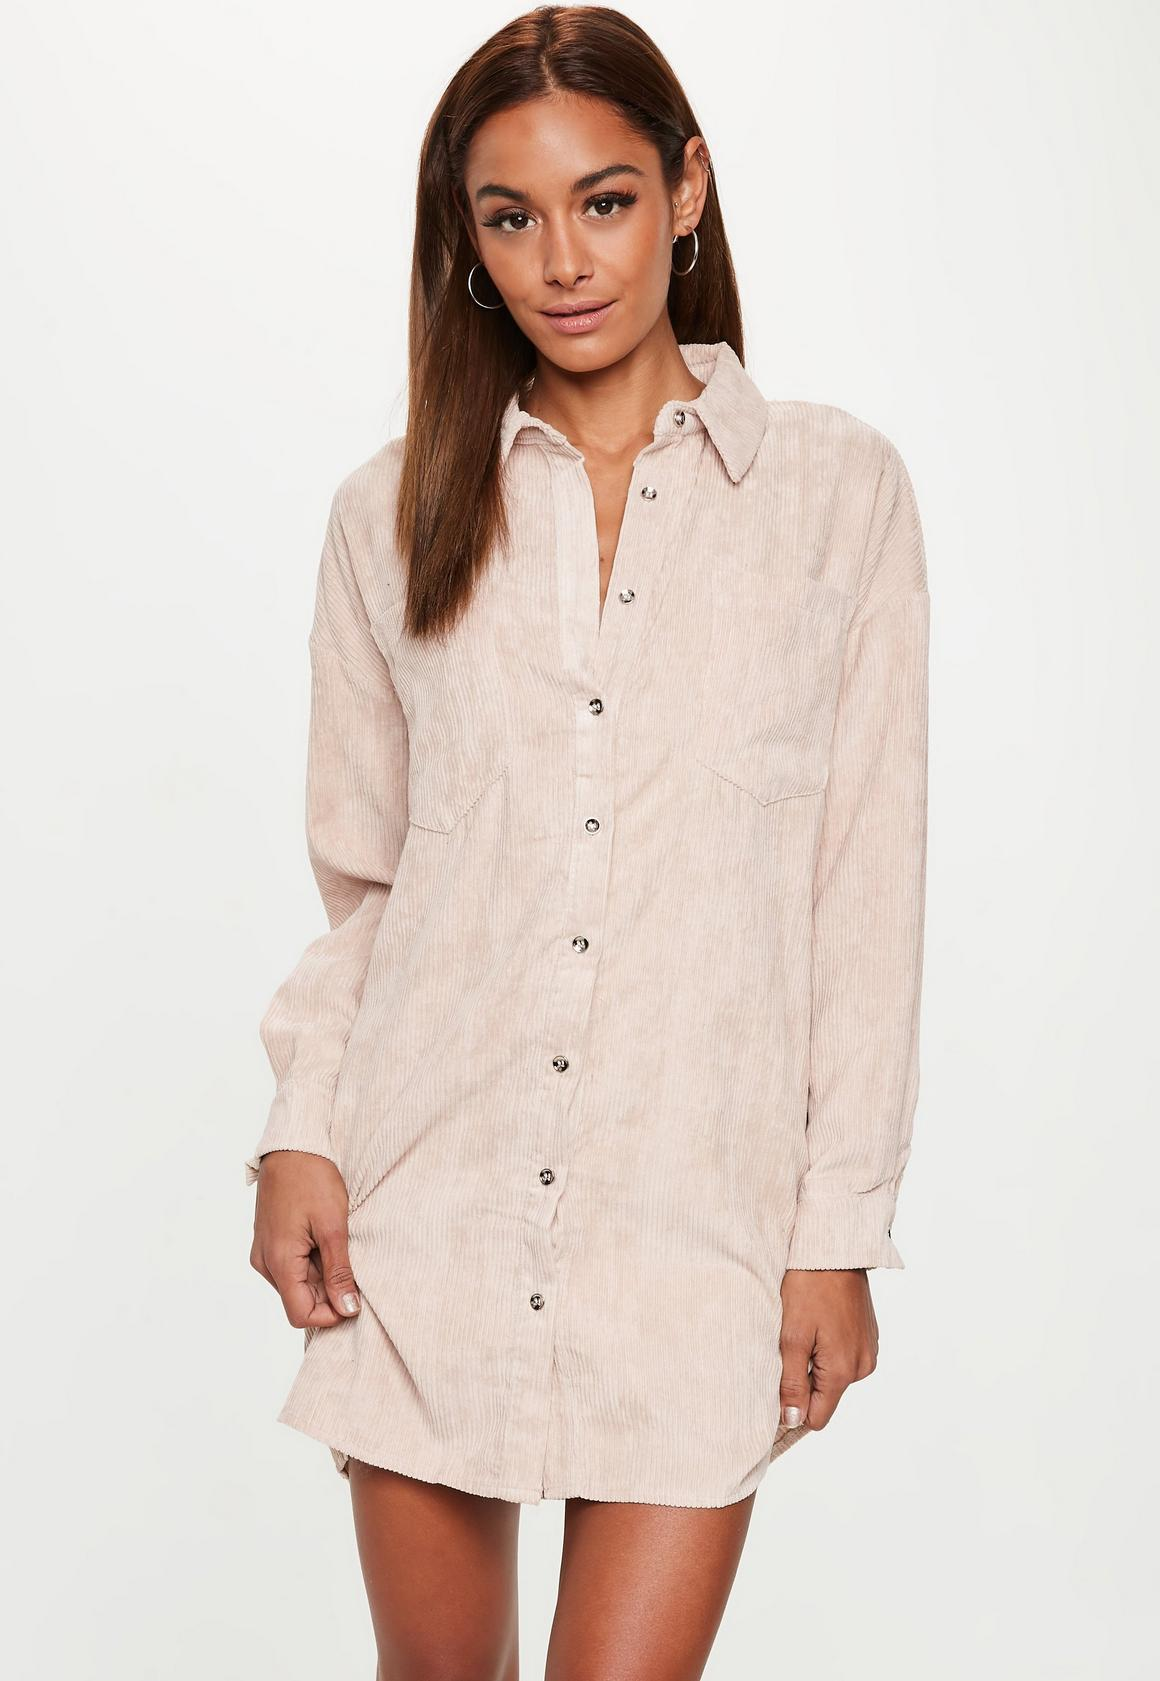 362ea946b4 Tall Cream Oversized Cord Shirt Dress. Previous Next